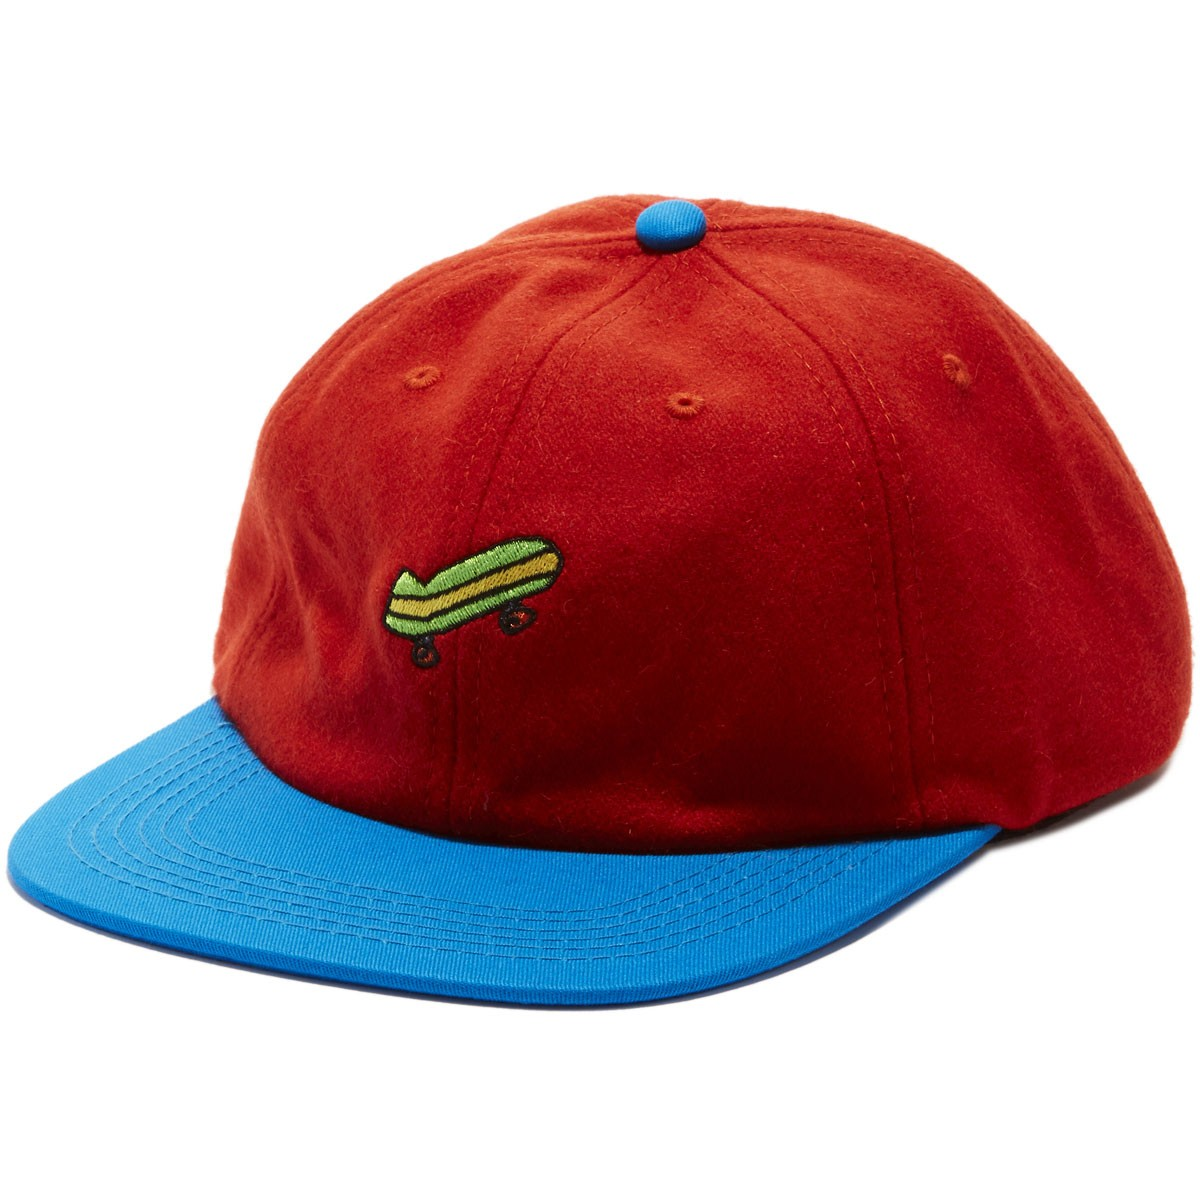 Illegal Civilization Sk8 Strapback Hat - Orange/Blue